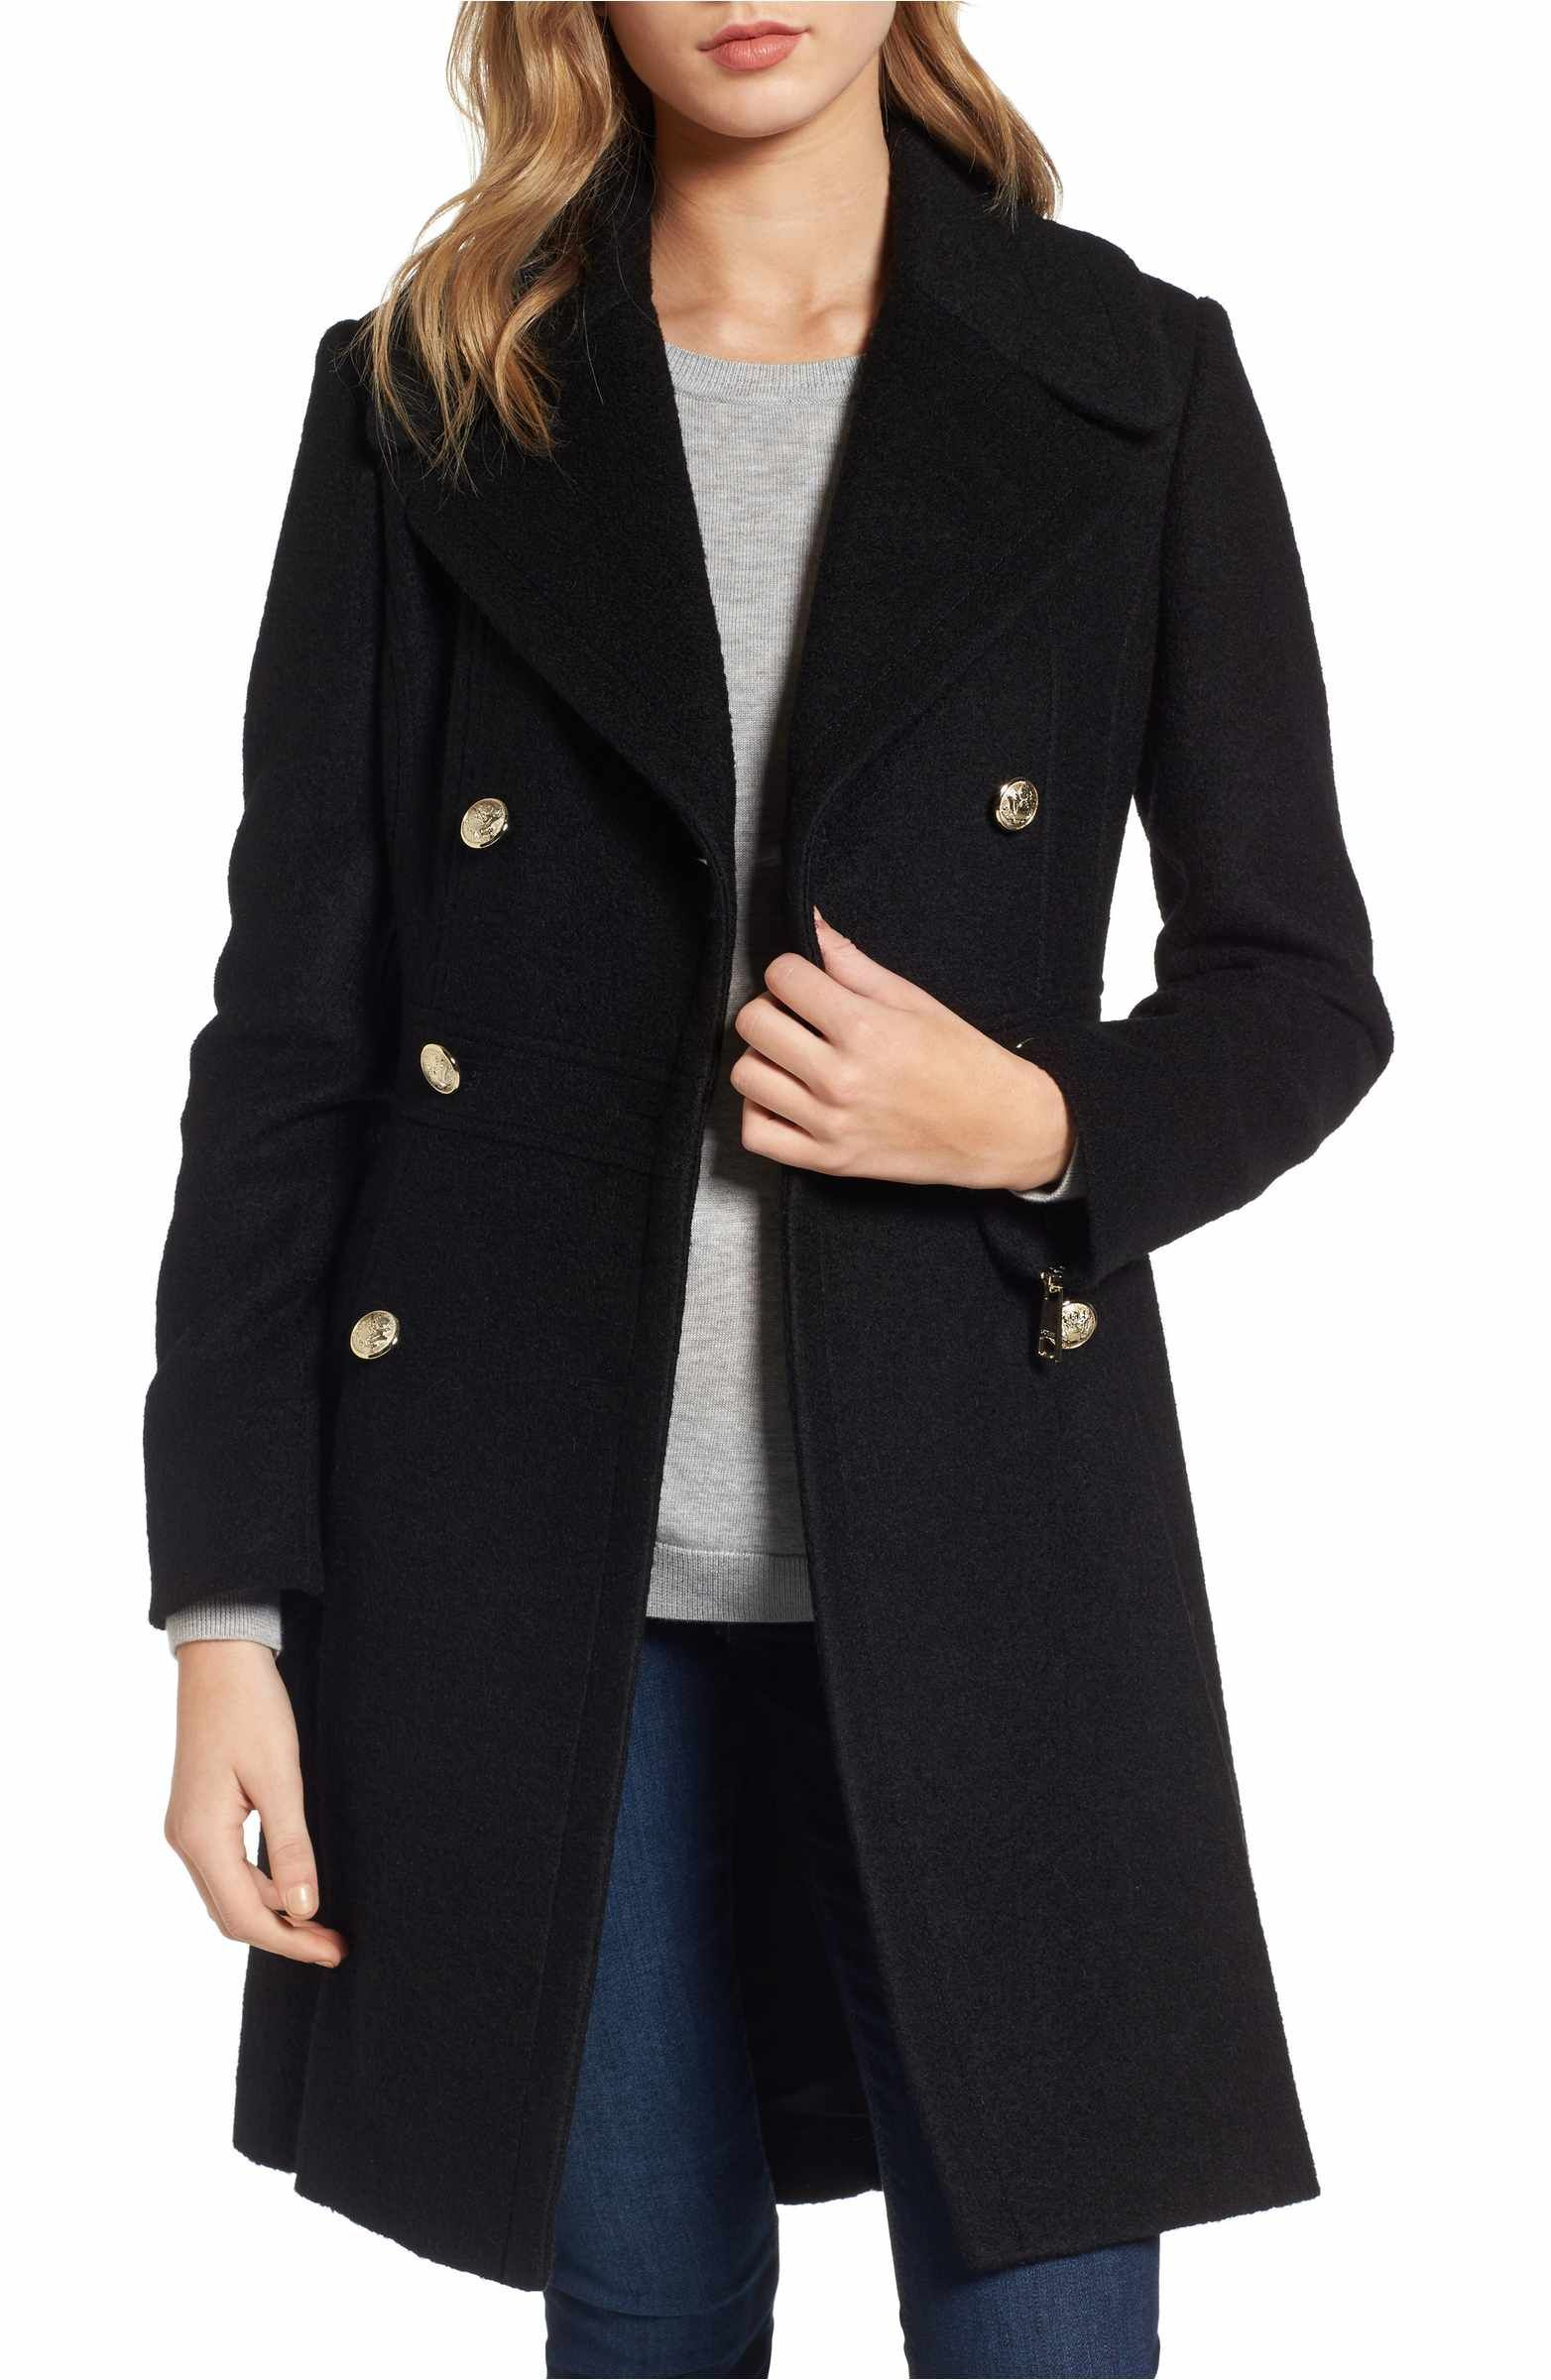 Main Image - GUESS Double Breasted Wool Blend Coat